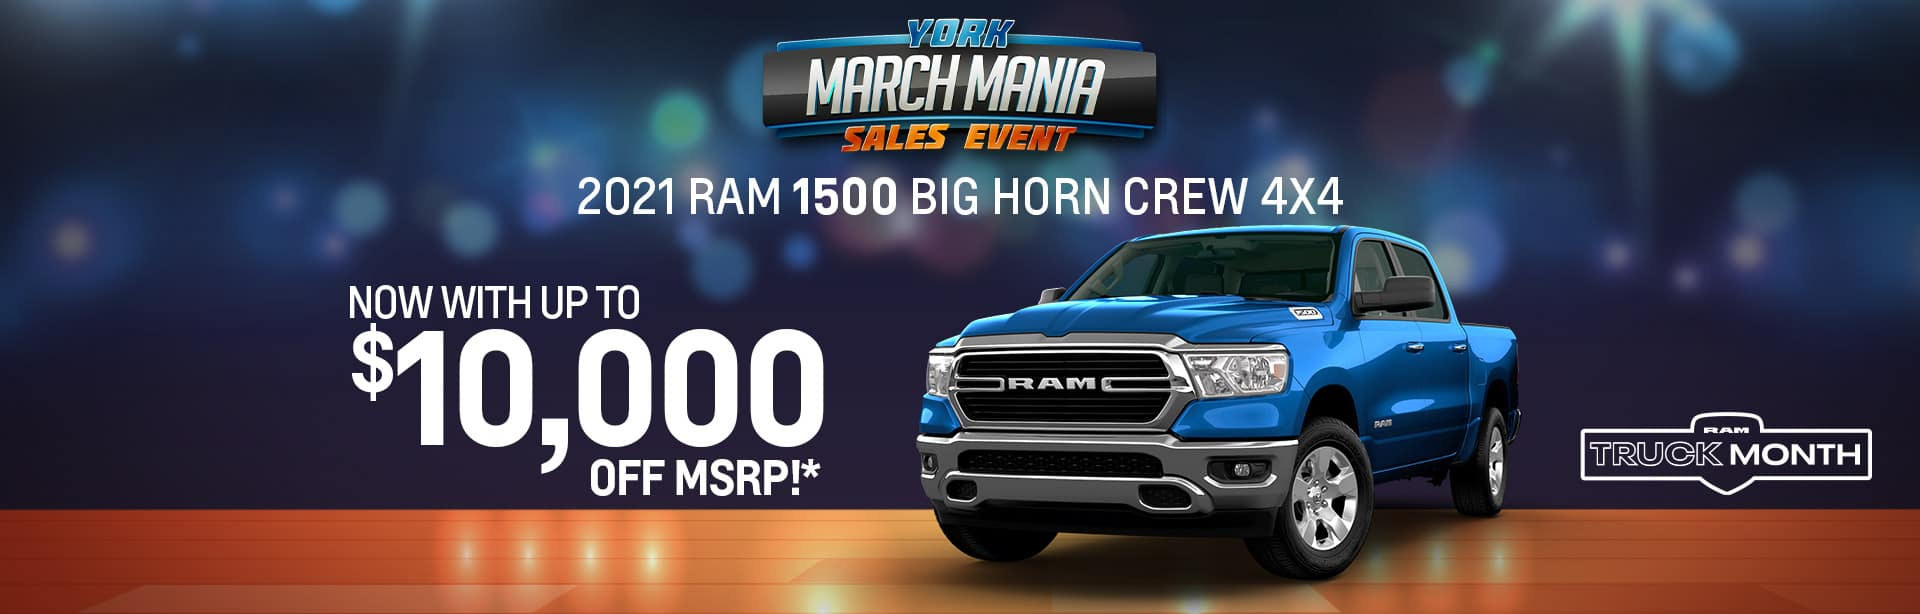 2021 RAM1500 Big Horn Rebate offer offer near Indianapolis IN